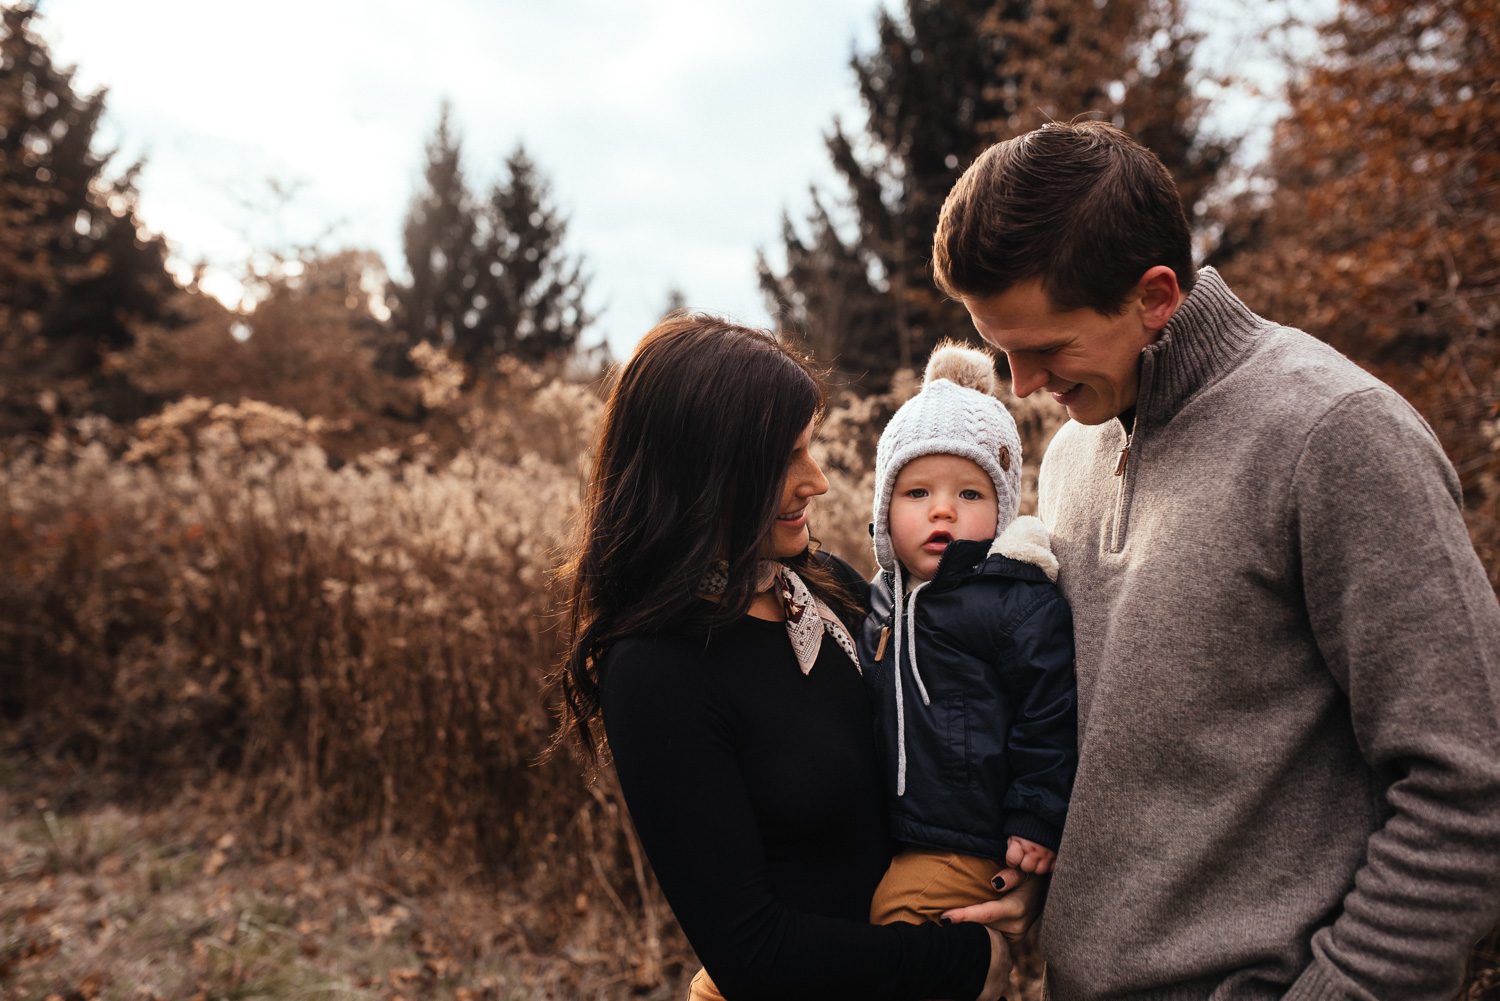 Columbus-Ohio-Family-Photographer-Erika-Venci-PhotographyLifestyle-Photographer-Columbus-Ohio-Erika-Venci-Photography